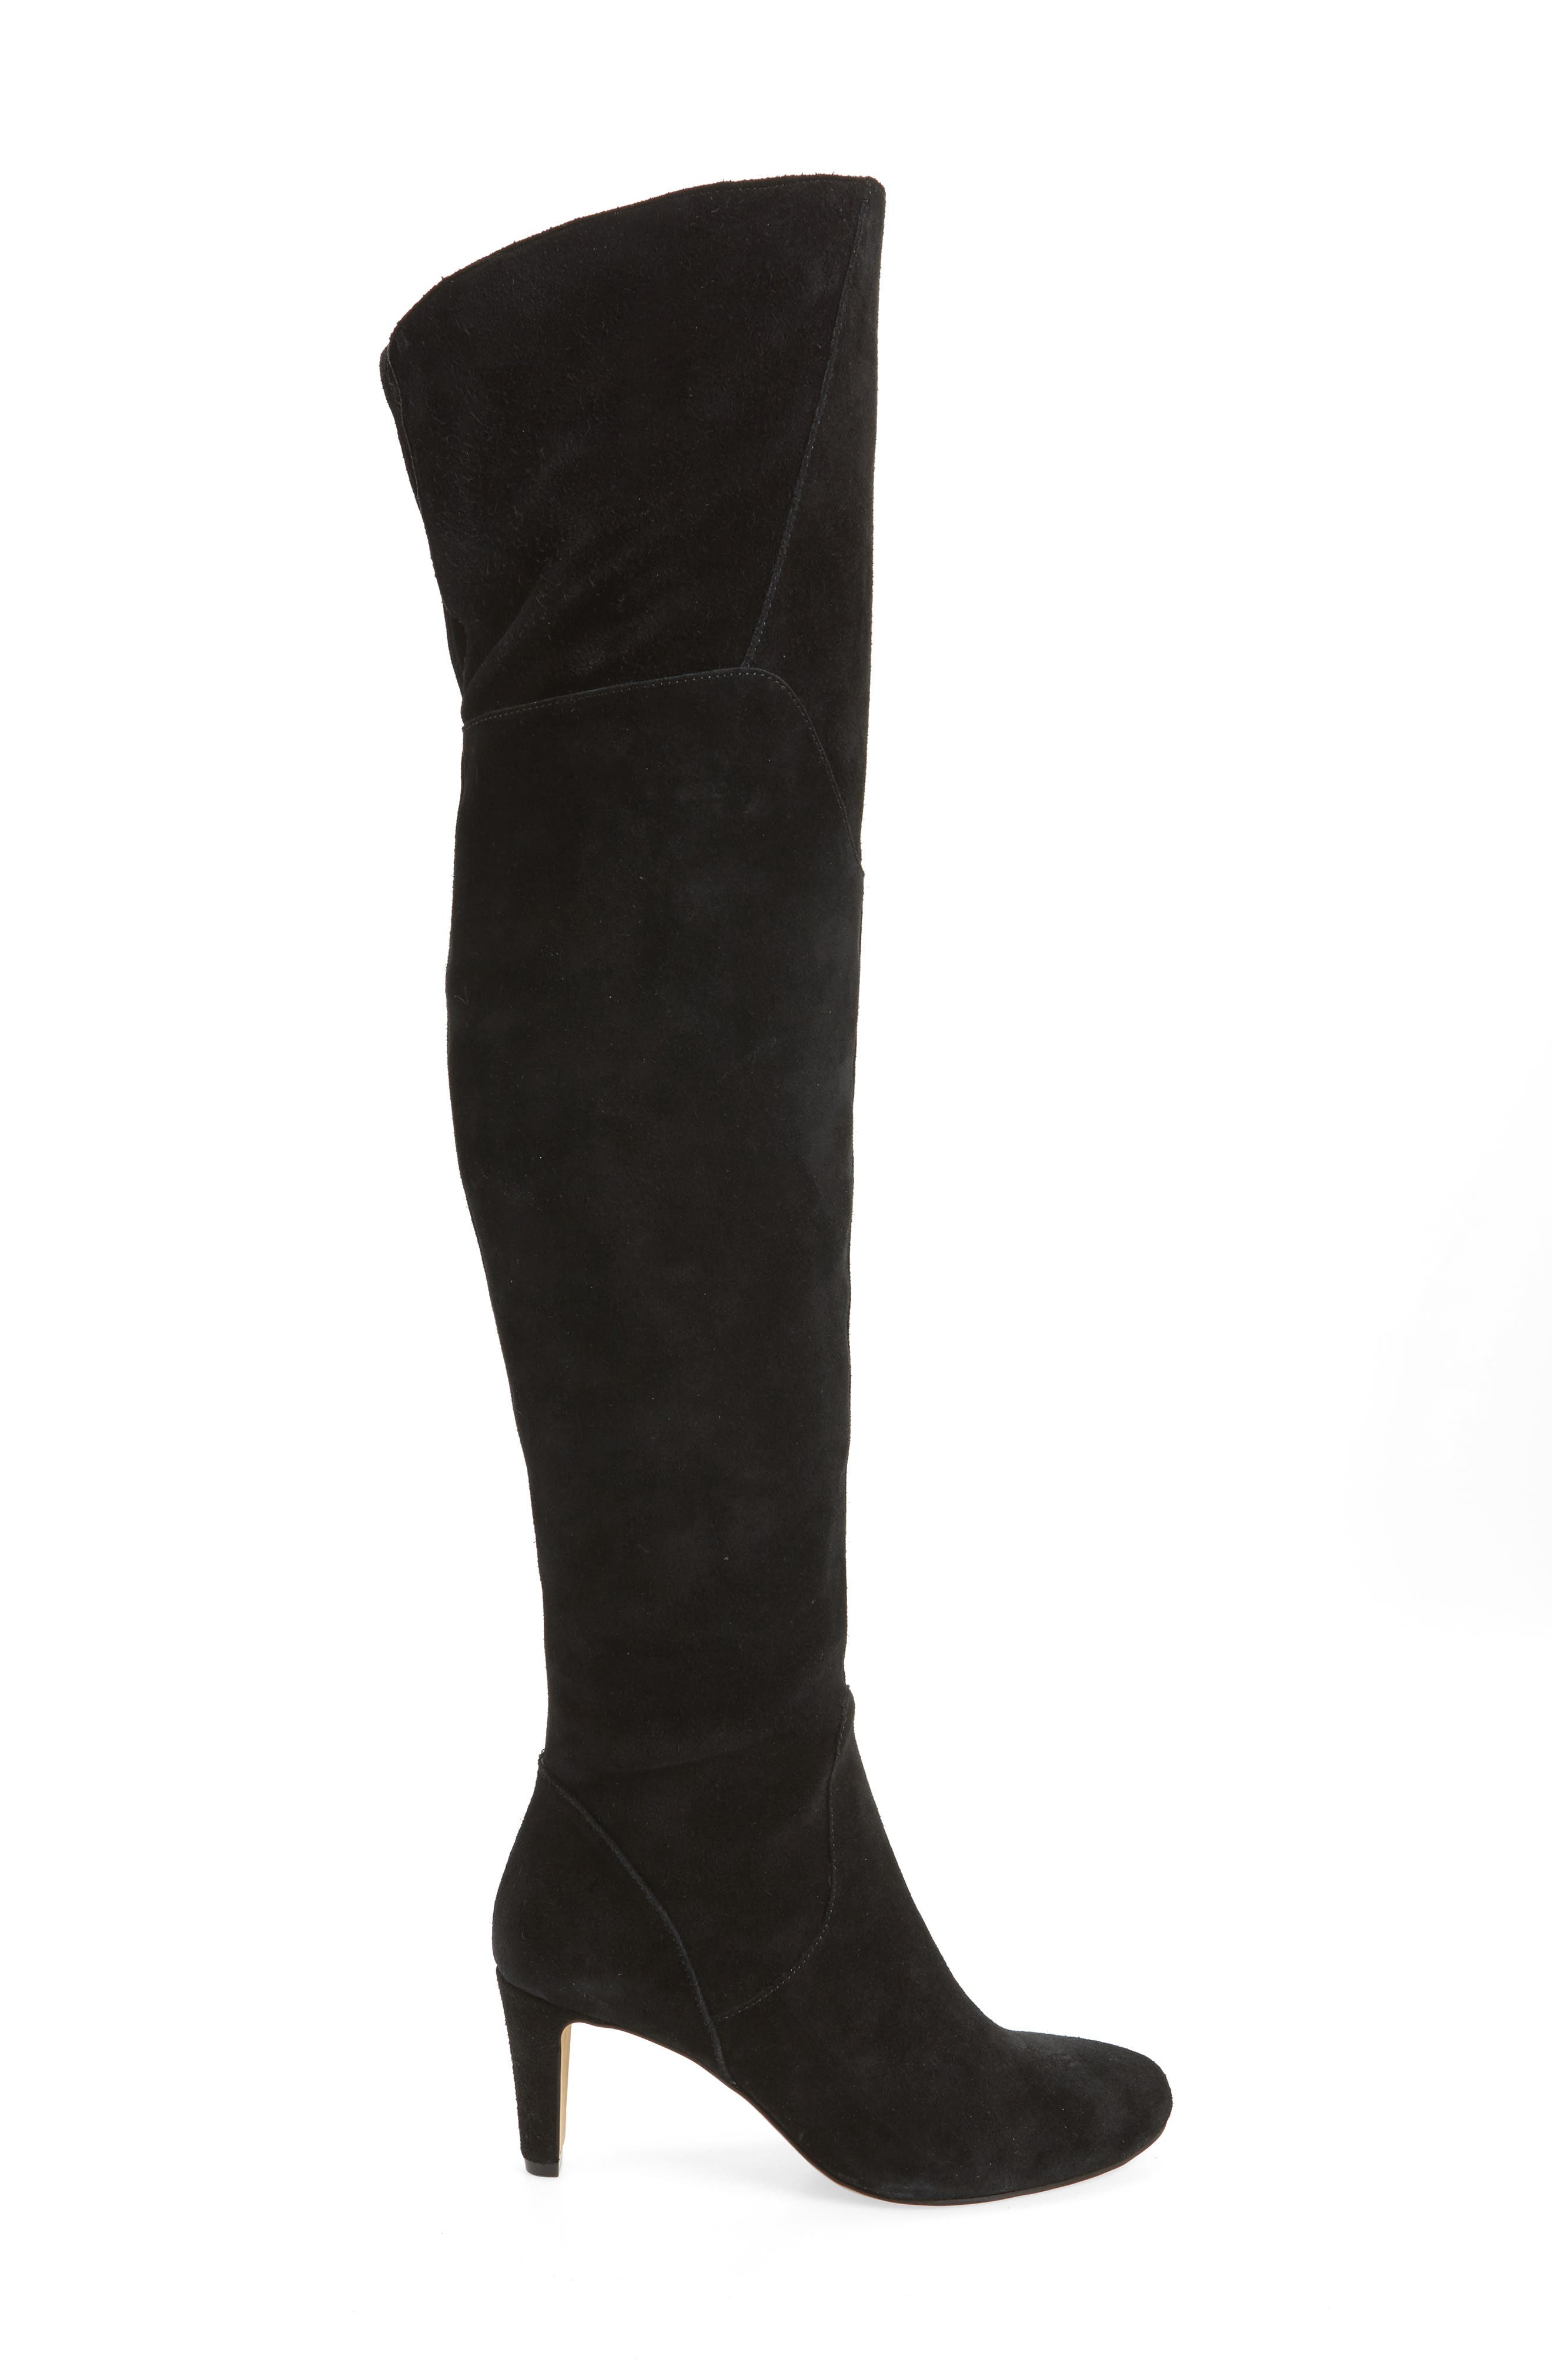 Armaceli Over the Knee Boot,                             Alternate thumbnail 9, color,